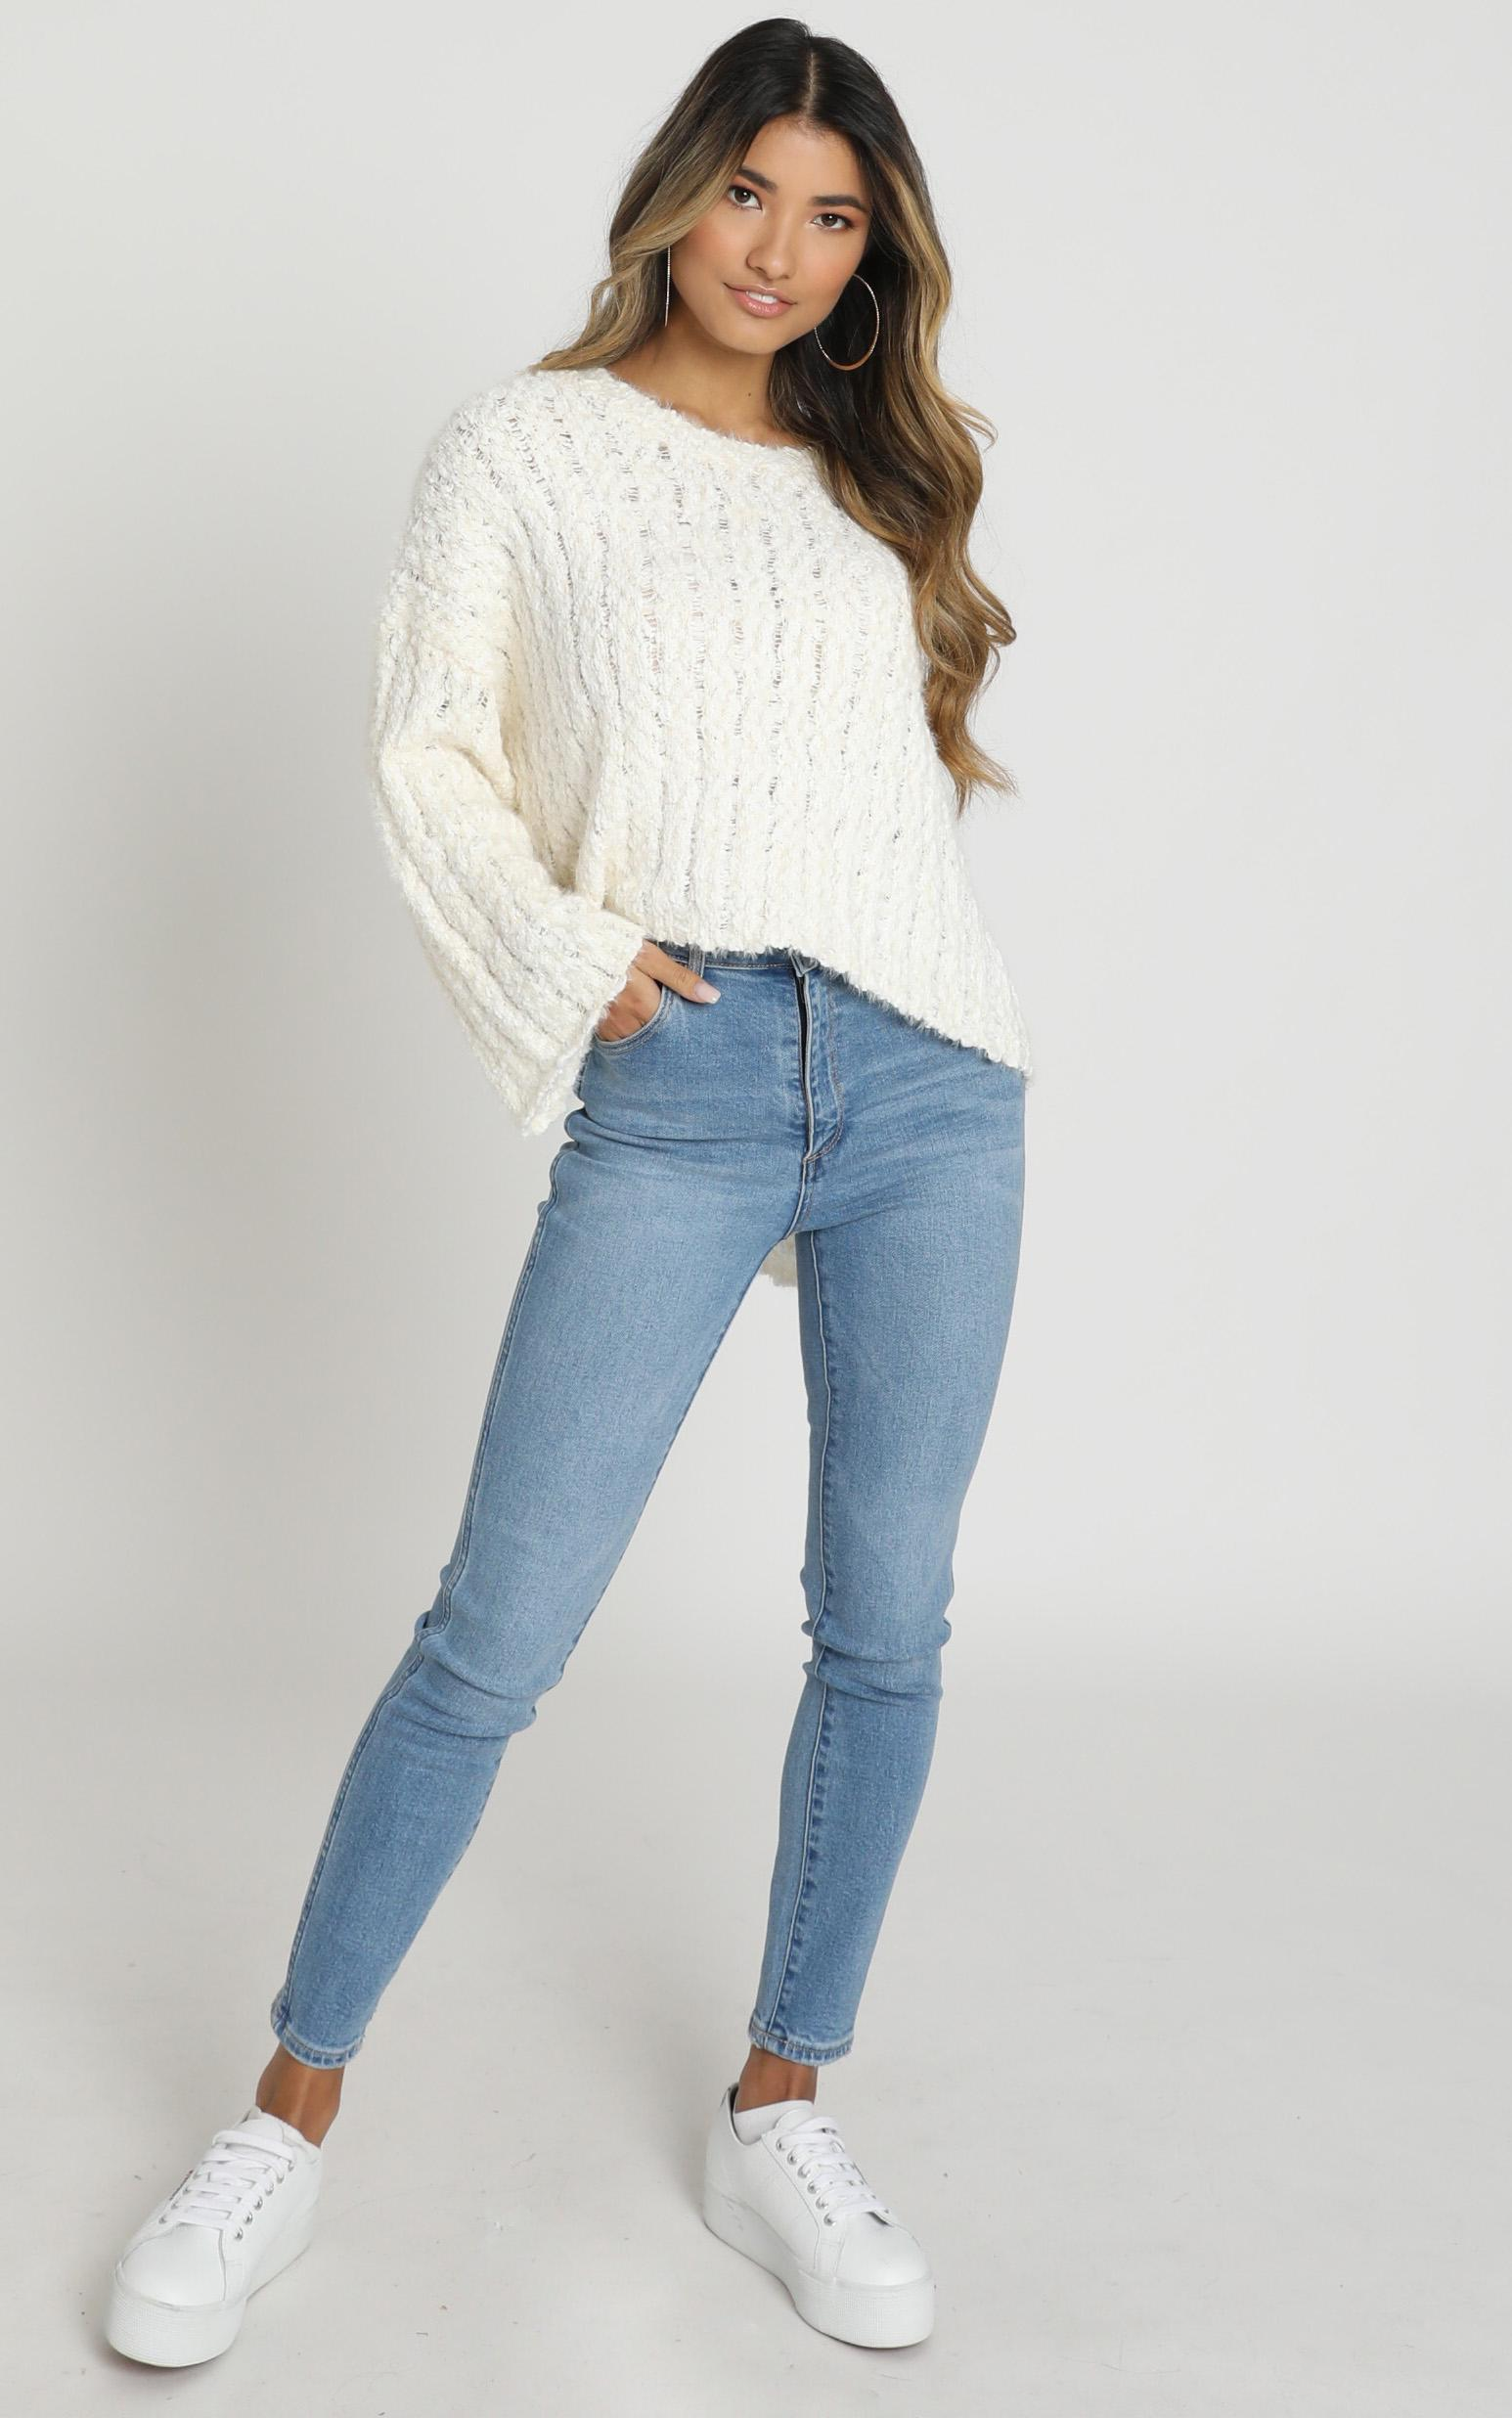 Bethen Fluffy Knit in Ivory - S/M, WHT3, hi-res image number null